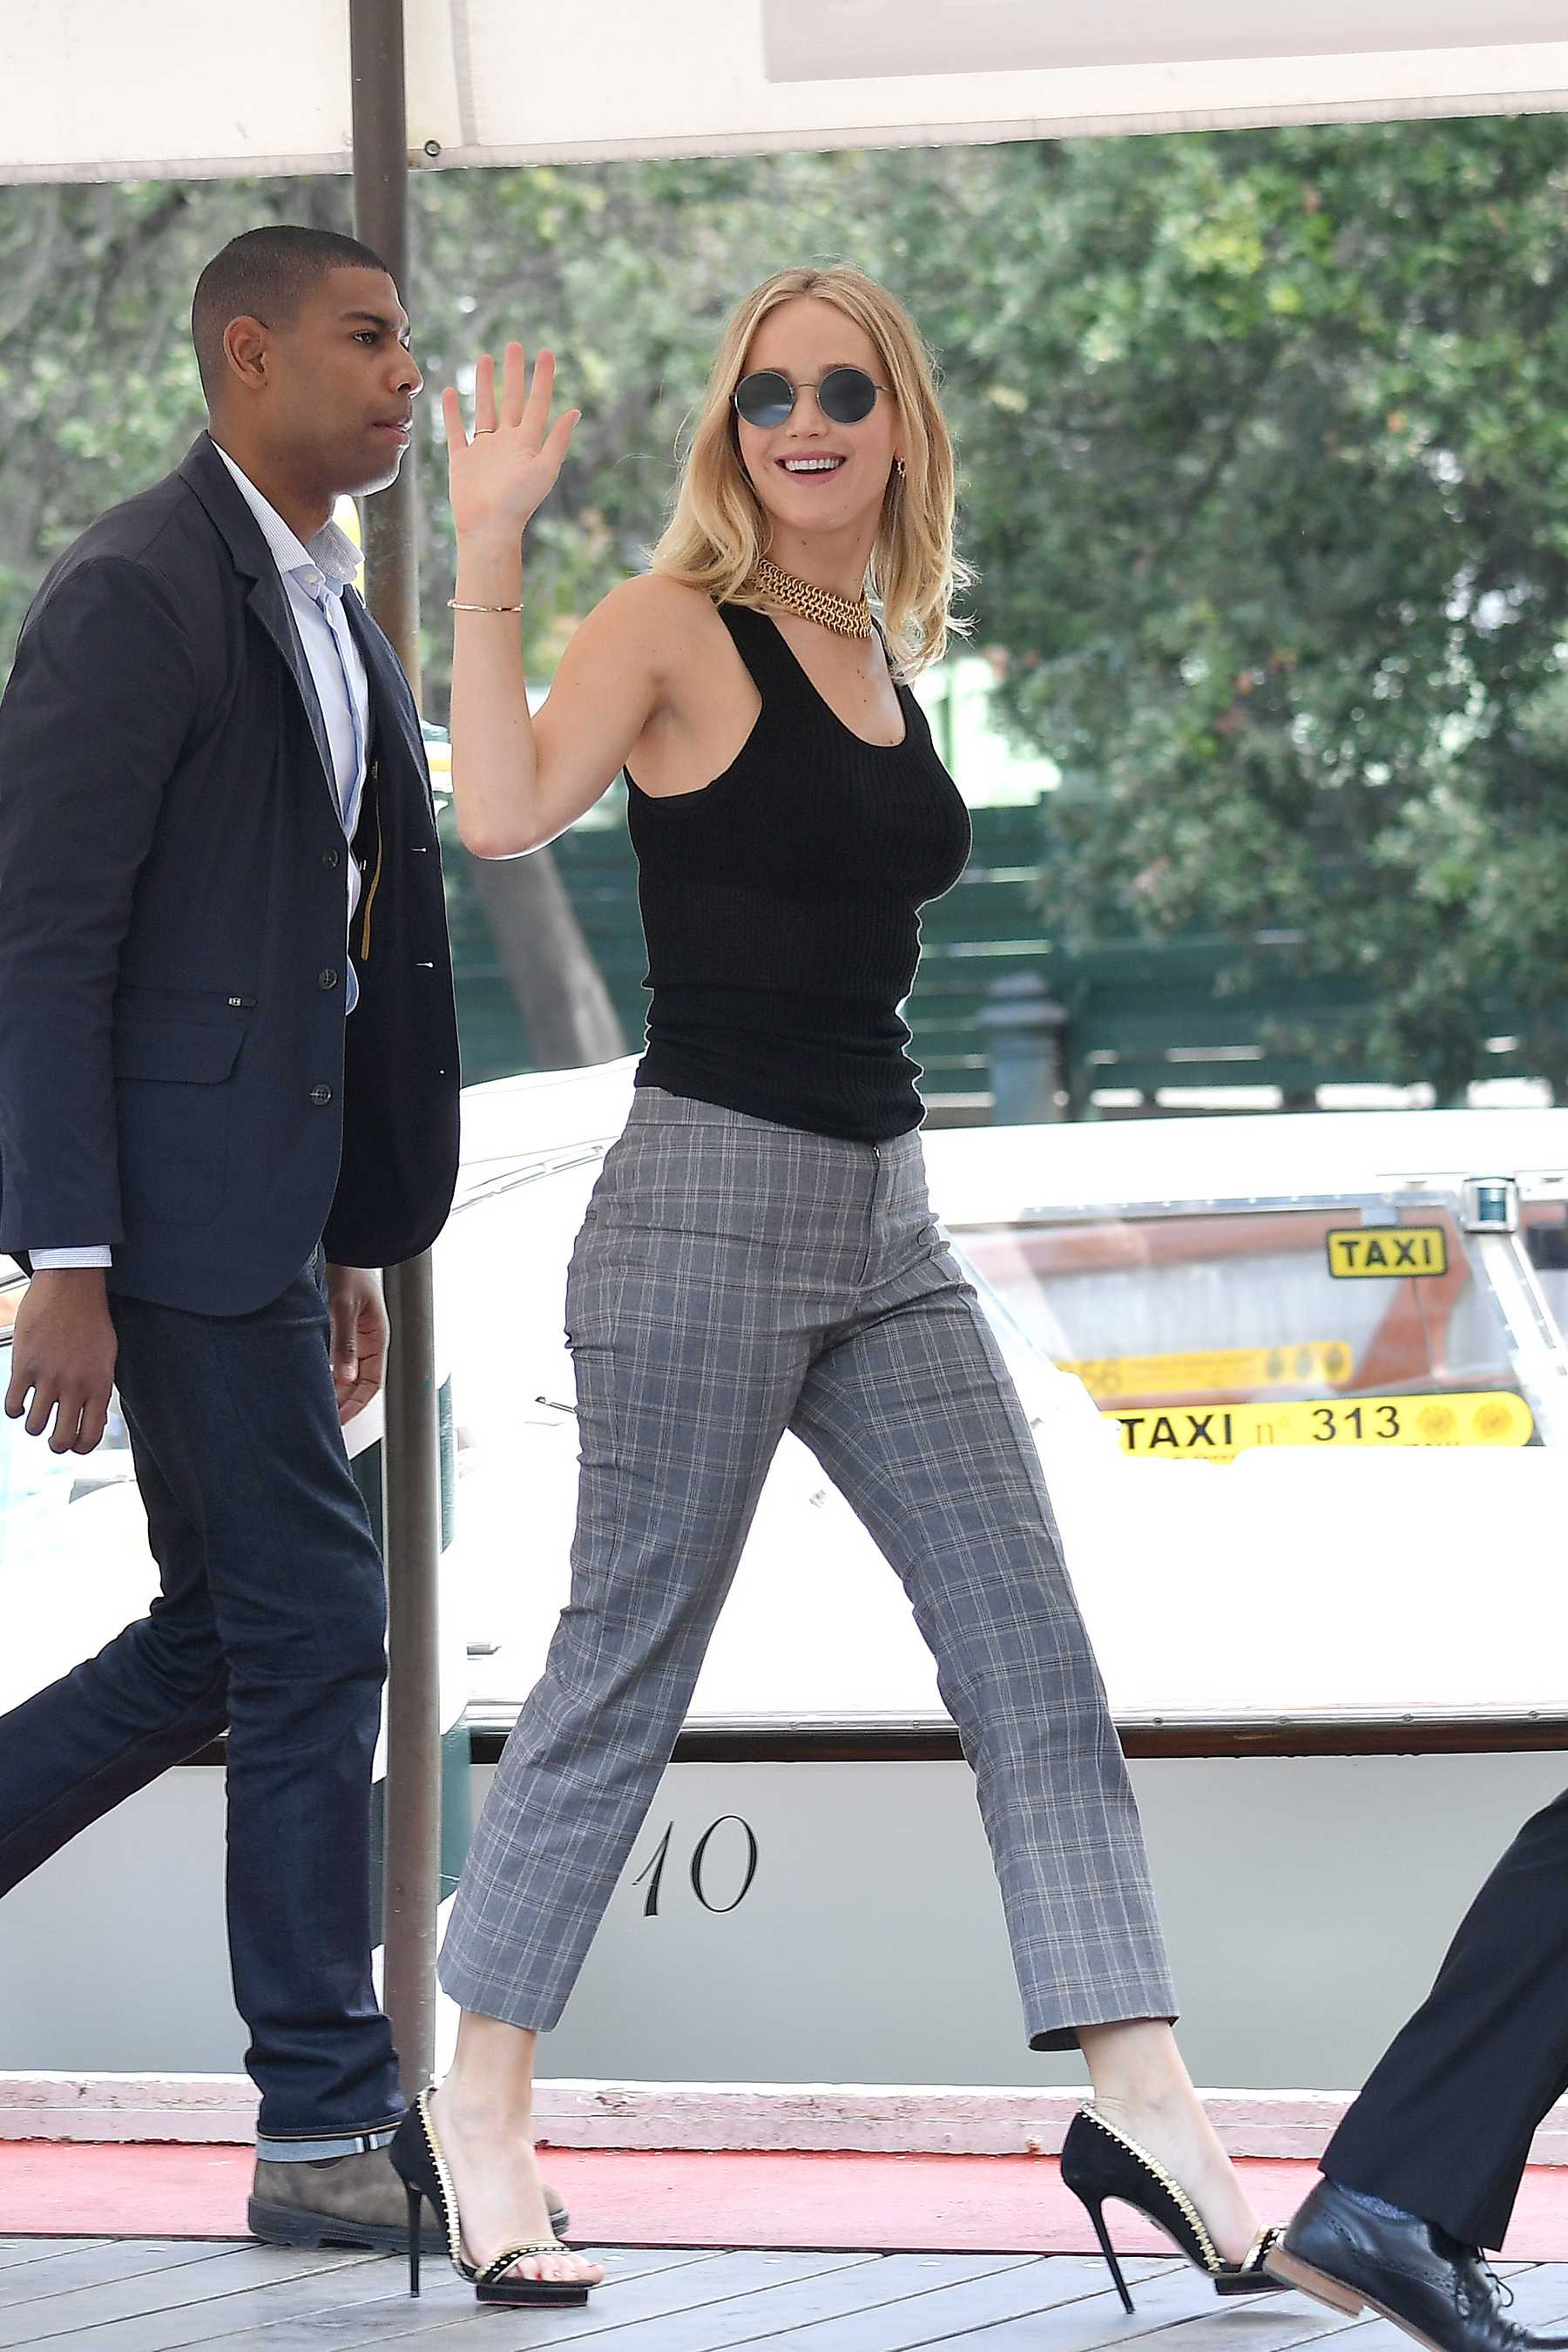 http://jenniferlawrencedaily.com/gallery/albums/userpics/10001/Jennifer_Lawrence_-_Arrives_at_Excelsior_Hotel_during_the_74th_Venice_Film_Festival_in_Italy_on_September_5-15.jpg